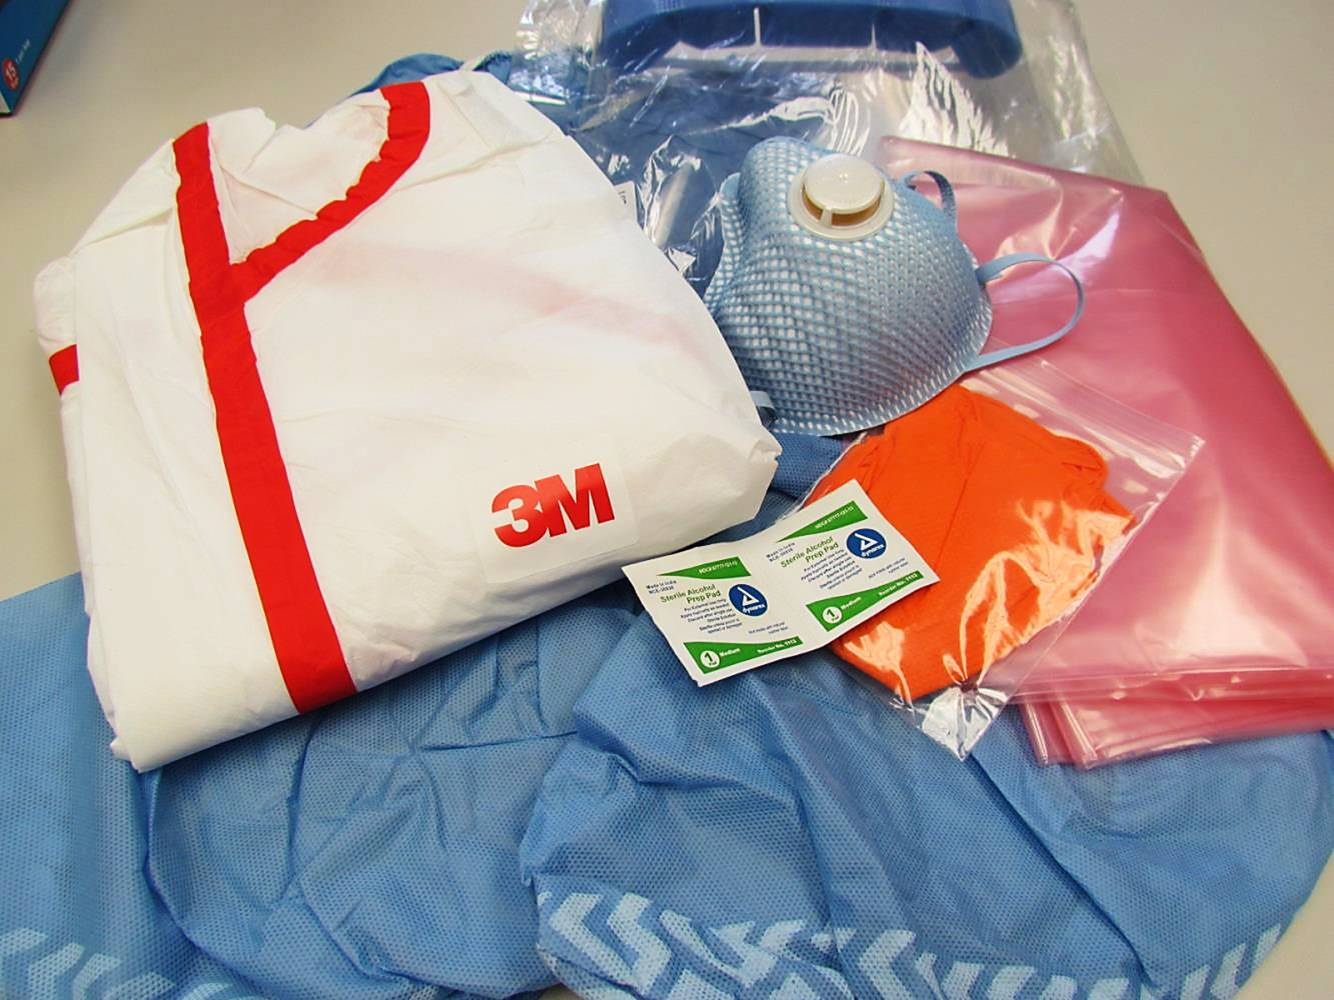 Disaster Response PPE 3M Coverall Kits